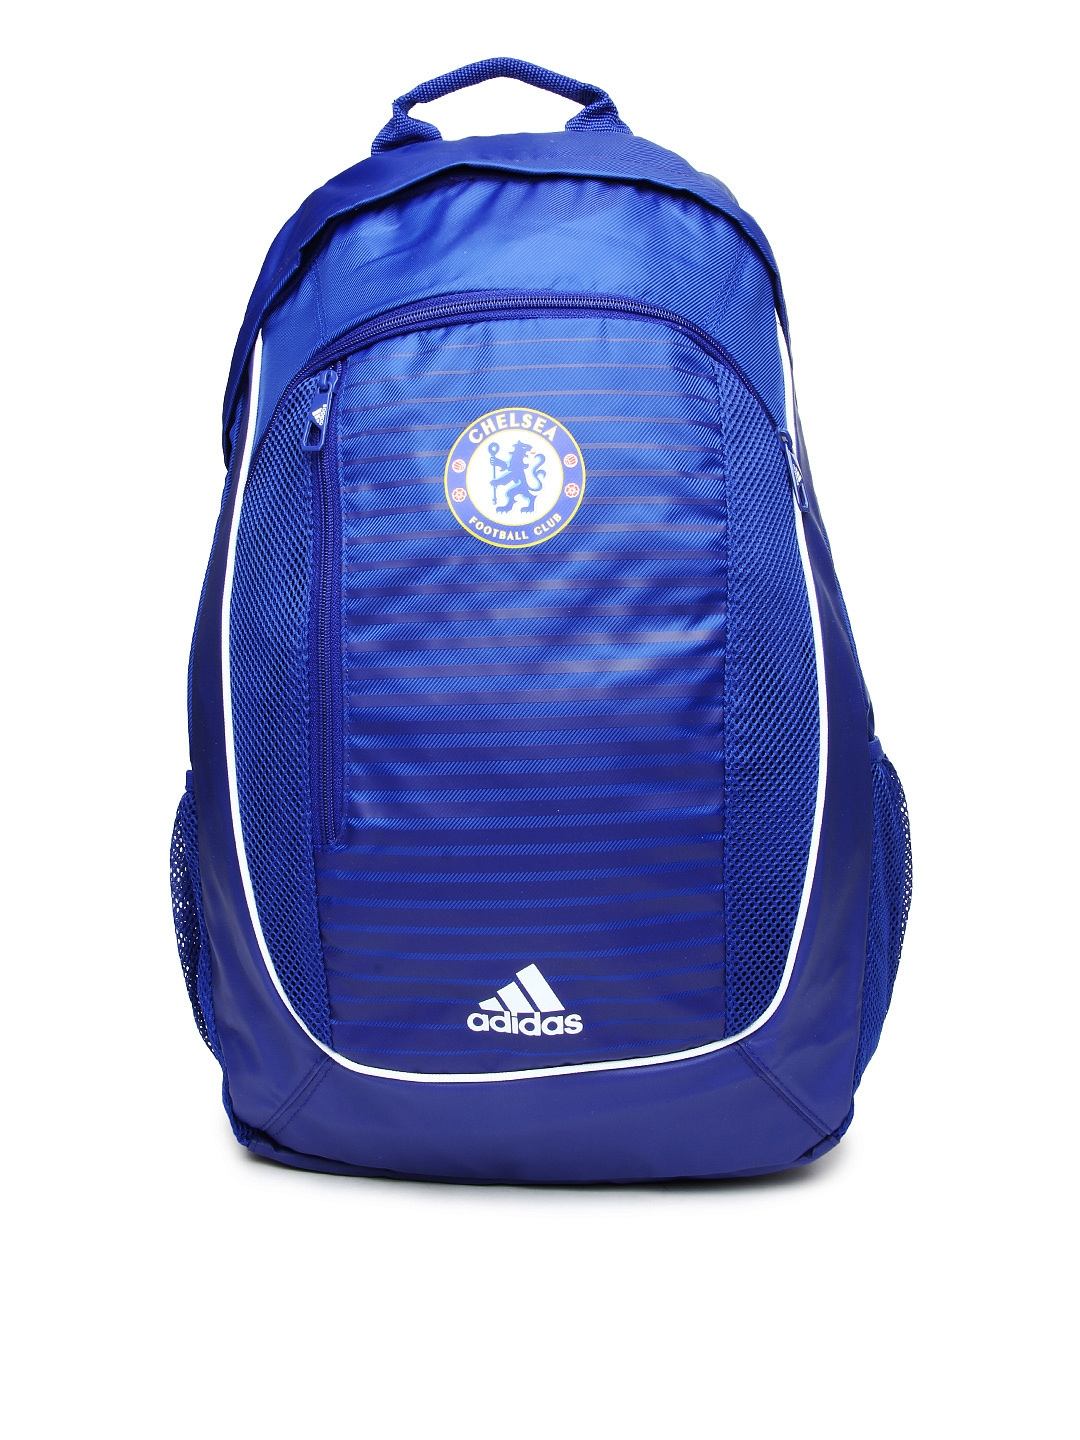 Adidas Capital Sling Backpack Uk- Fenix Toulouse Handball 04236074565c6